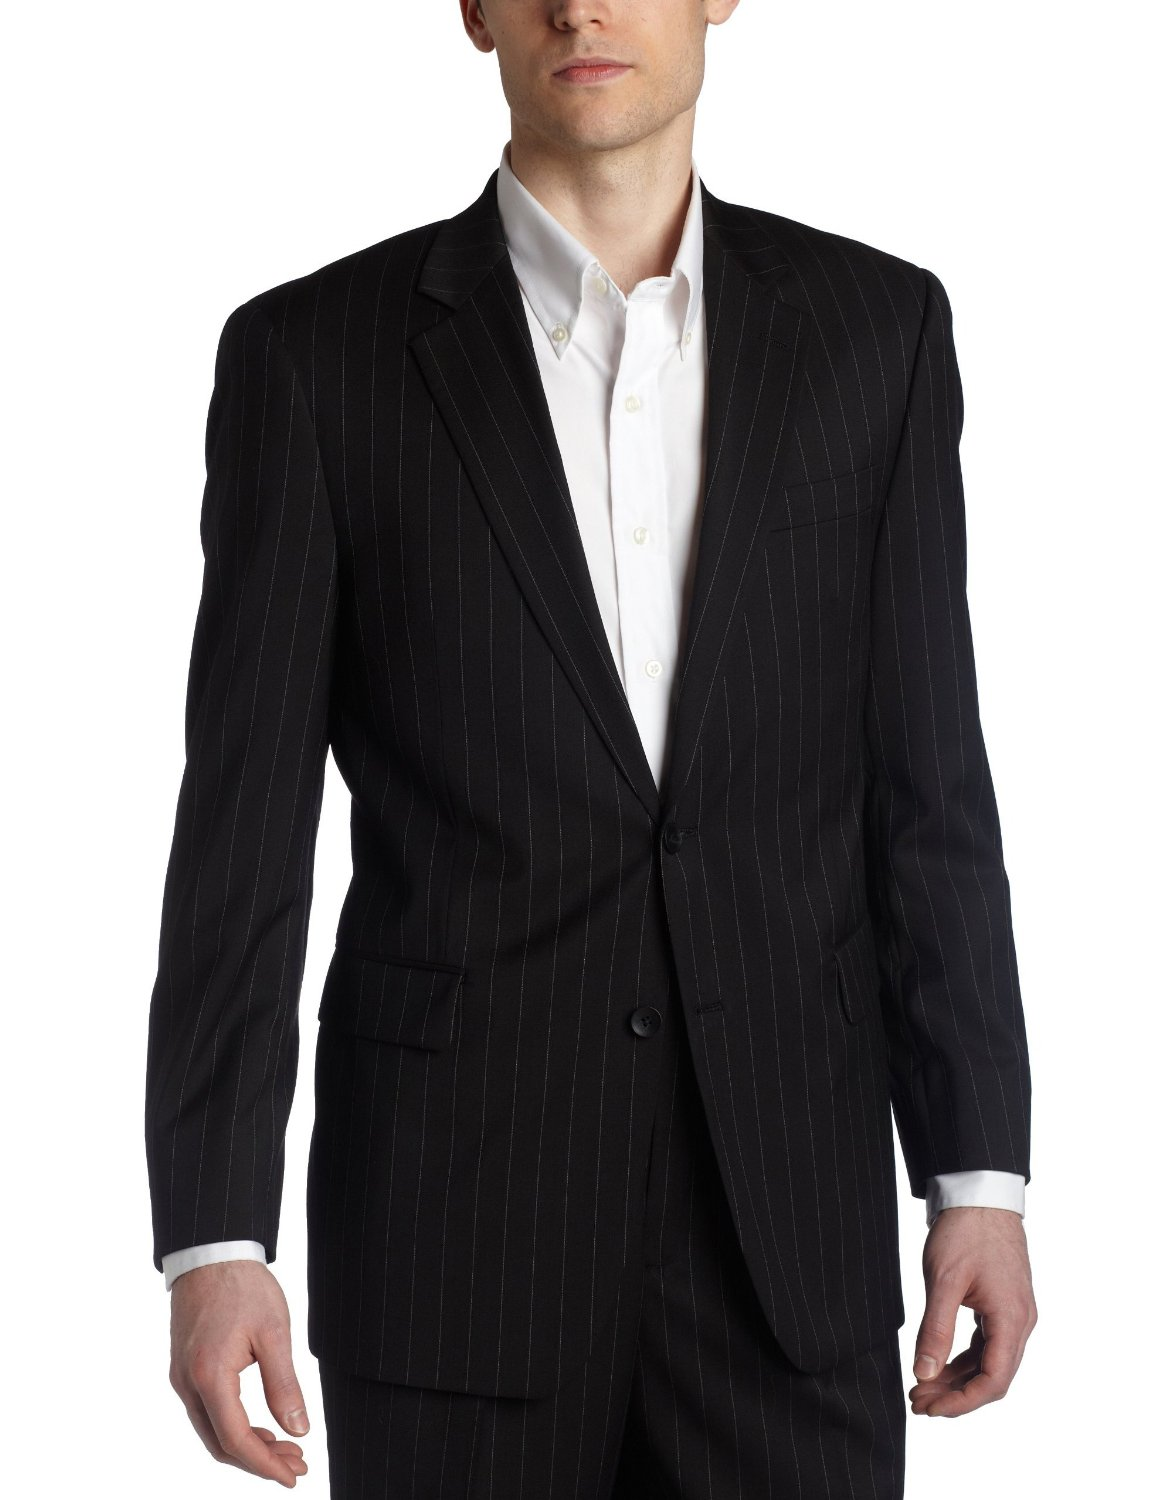 Cheap Black Suit Jacket